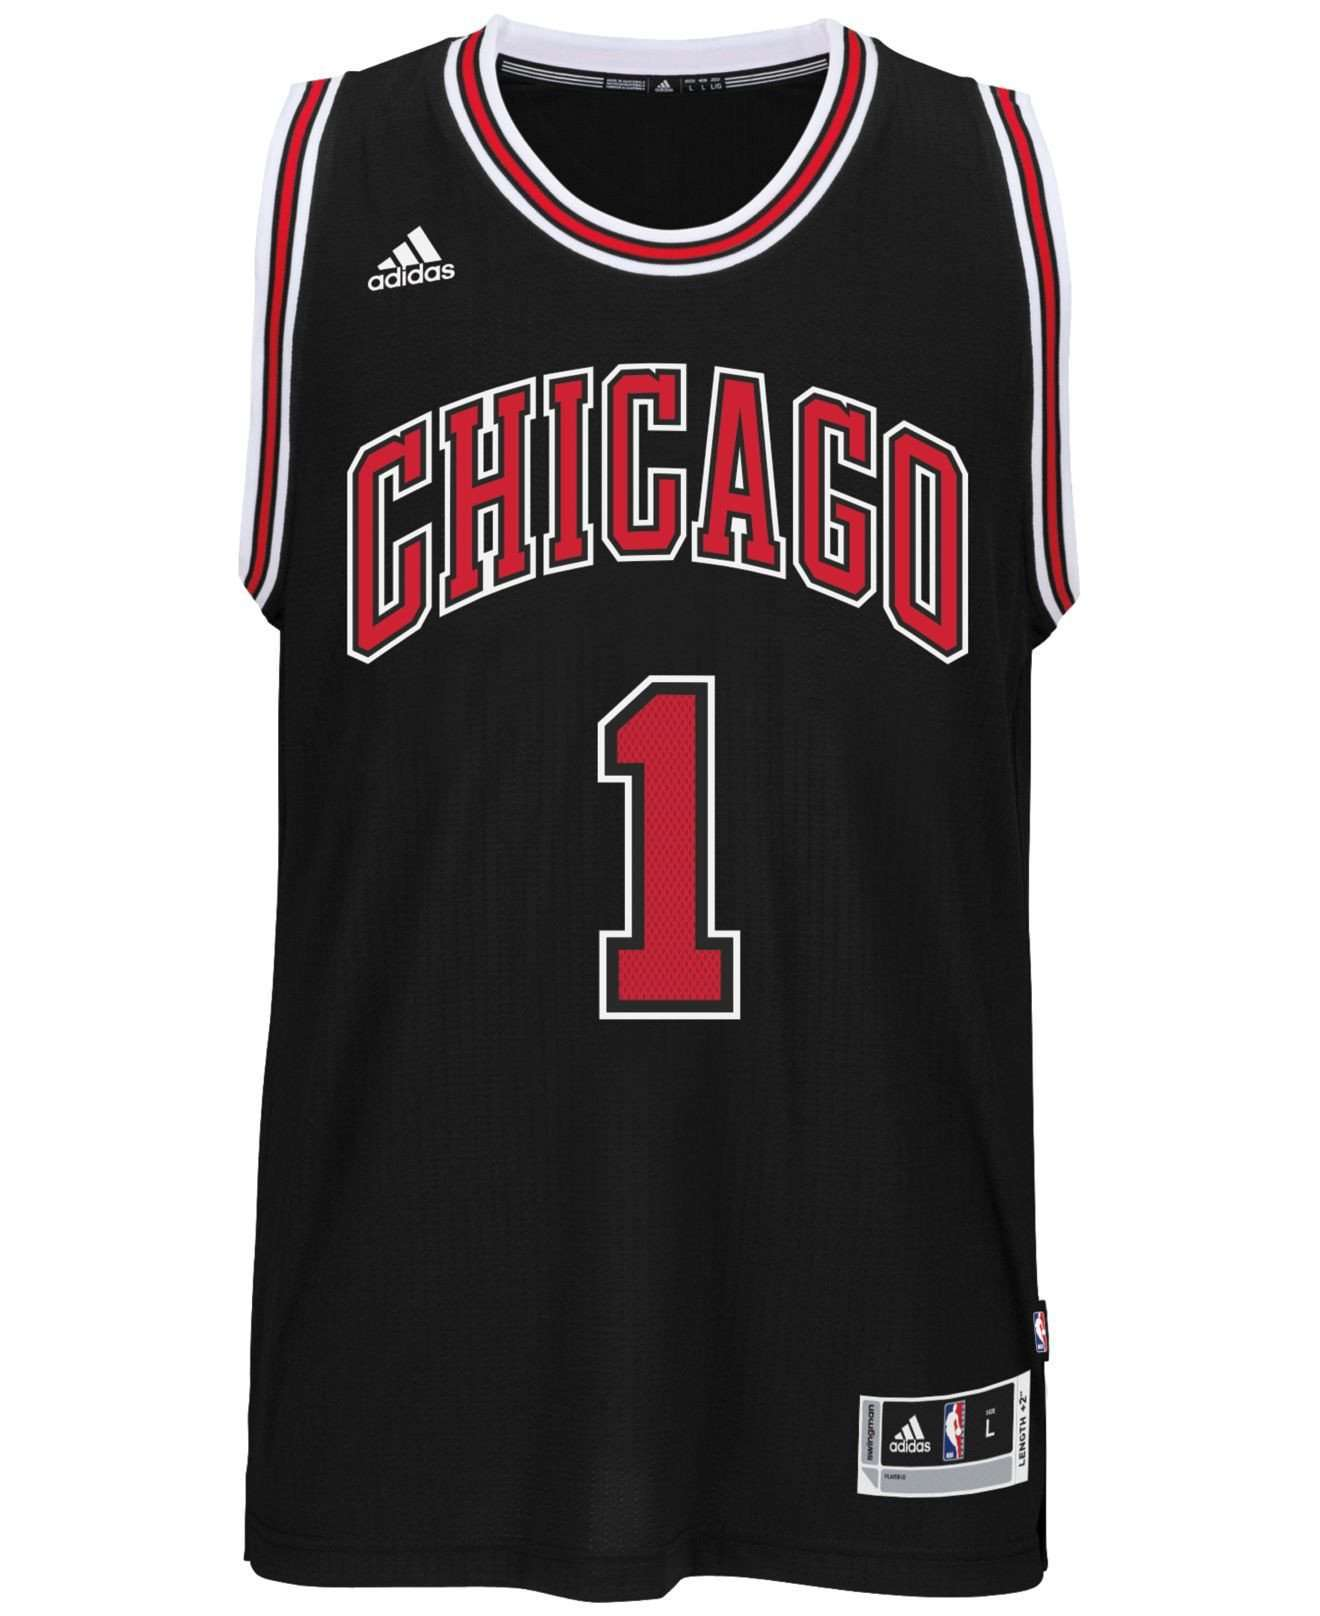 70aac7ad1 Derrick Rose Chicago Bulls Swingman Jersey by Adidas. Derrick Rose Chicago  Bulls Swingman Jersey by Adidas